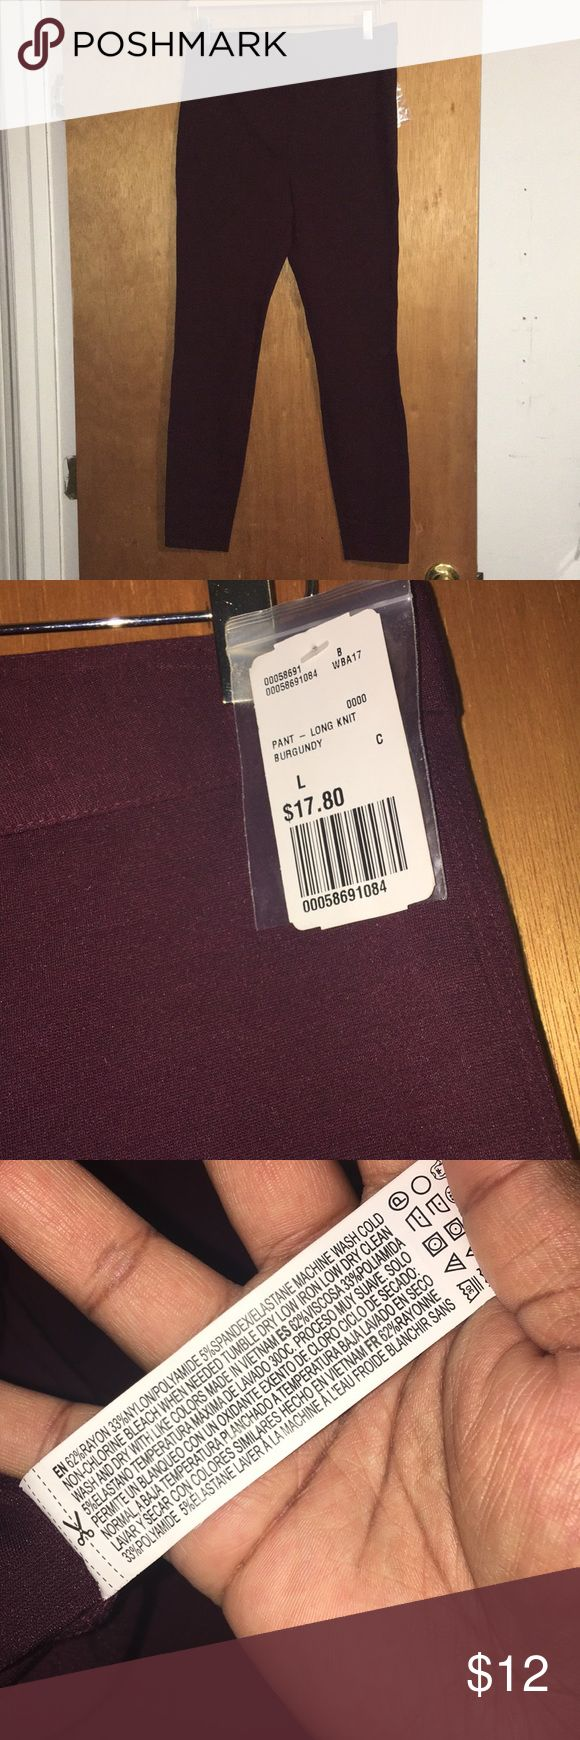 F21 burgundy jeggins Super stretchy regular waist jeggins Forever 21 Pants Leggings